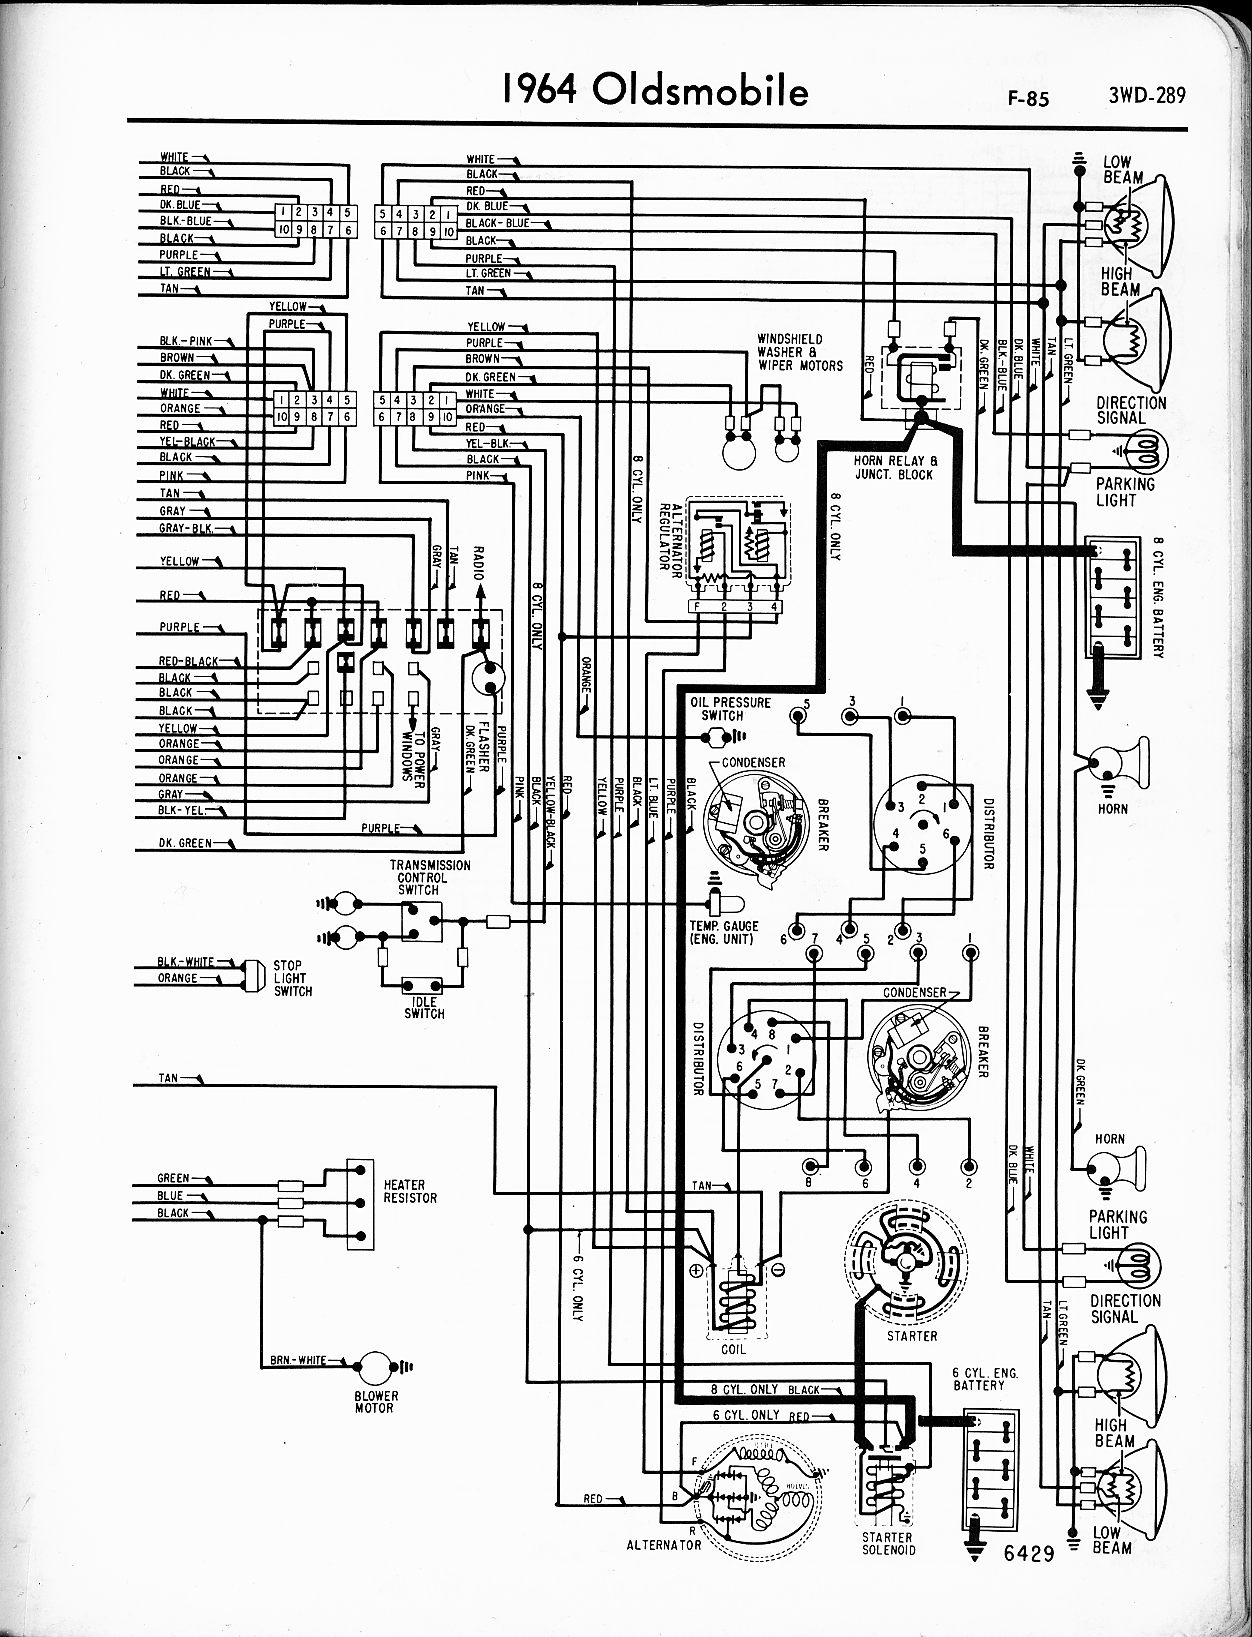 radio wiring harness diagram on oldsmobile silhouette within oldsmobile wiring and engine